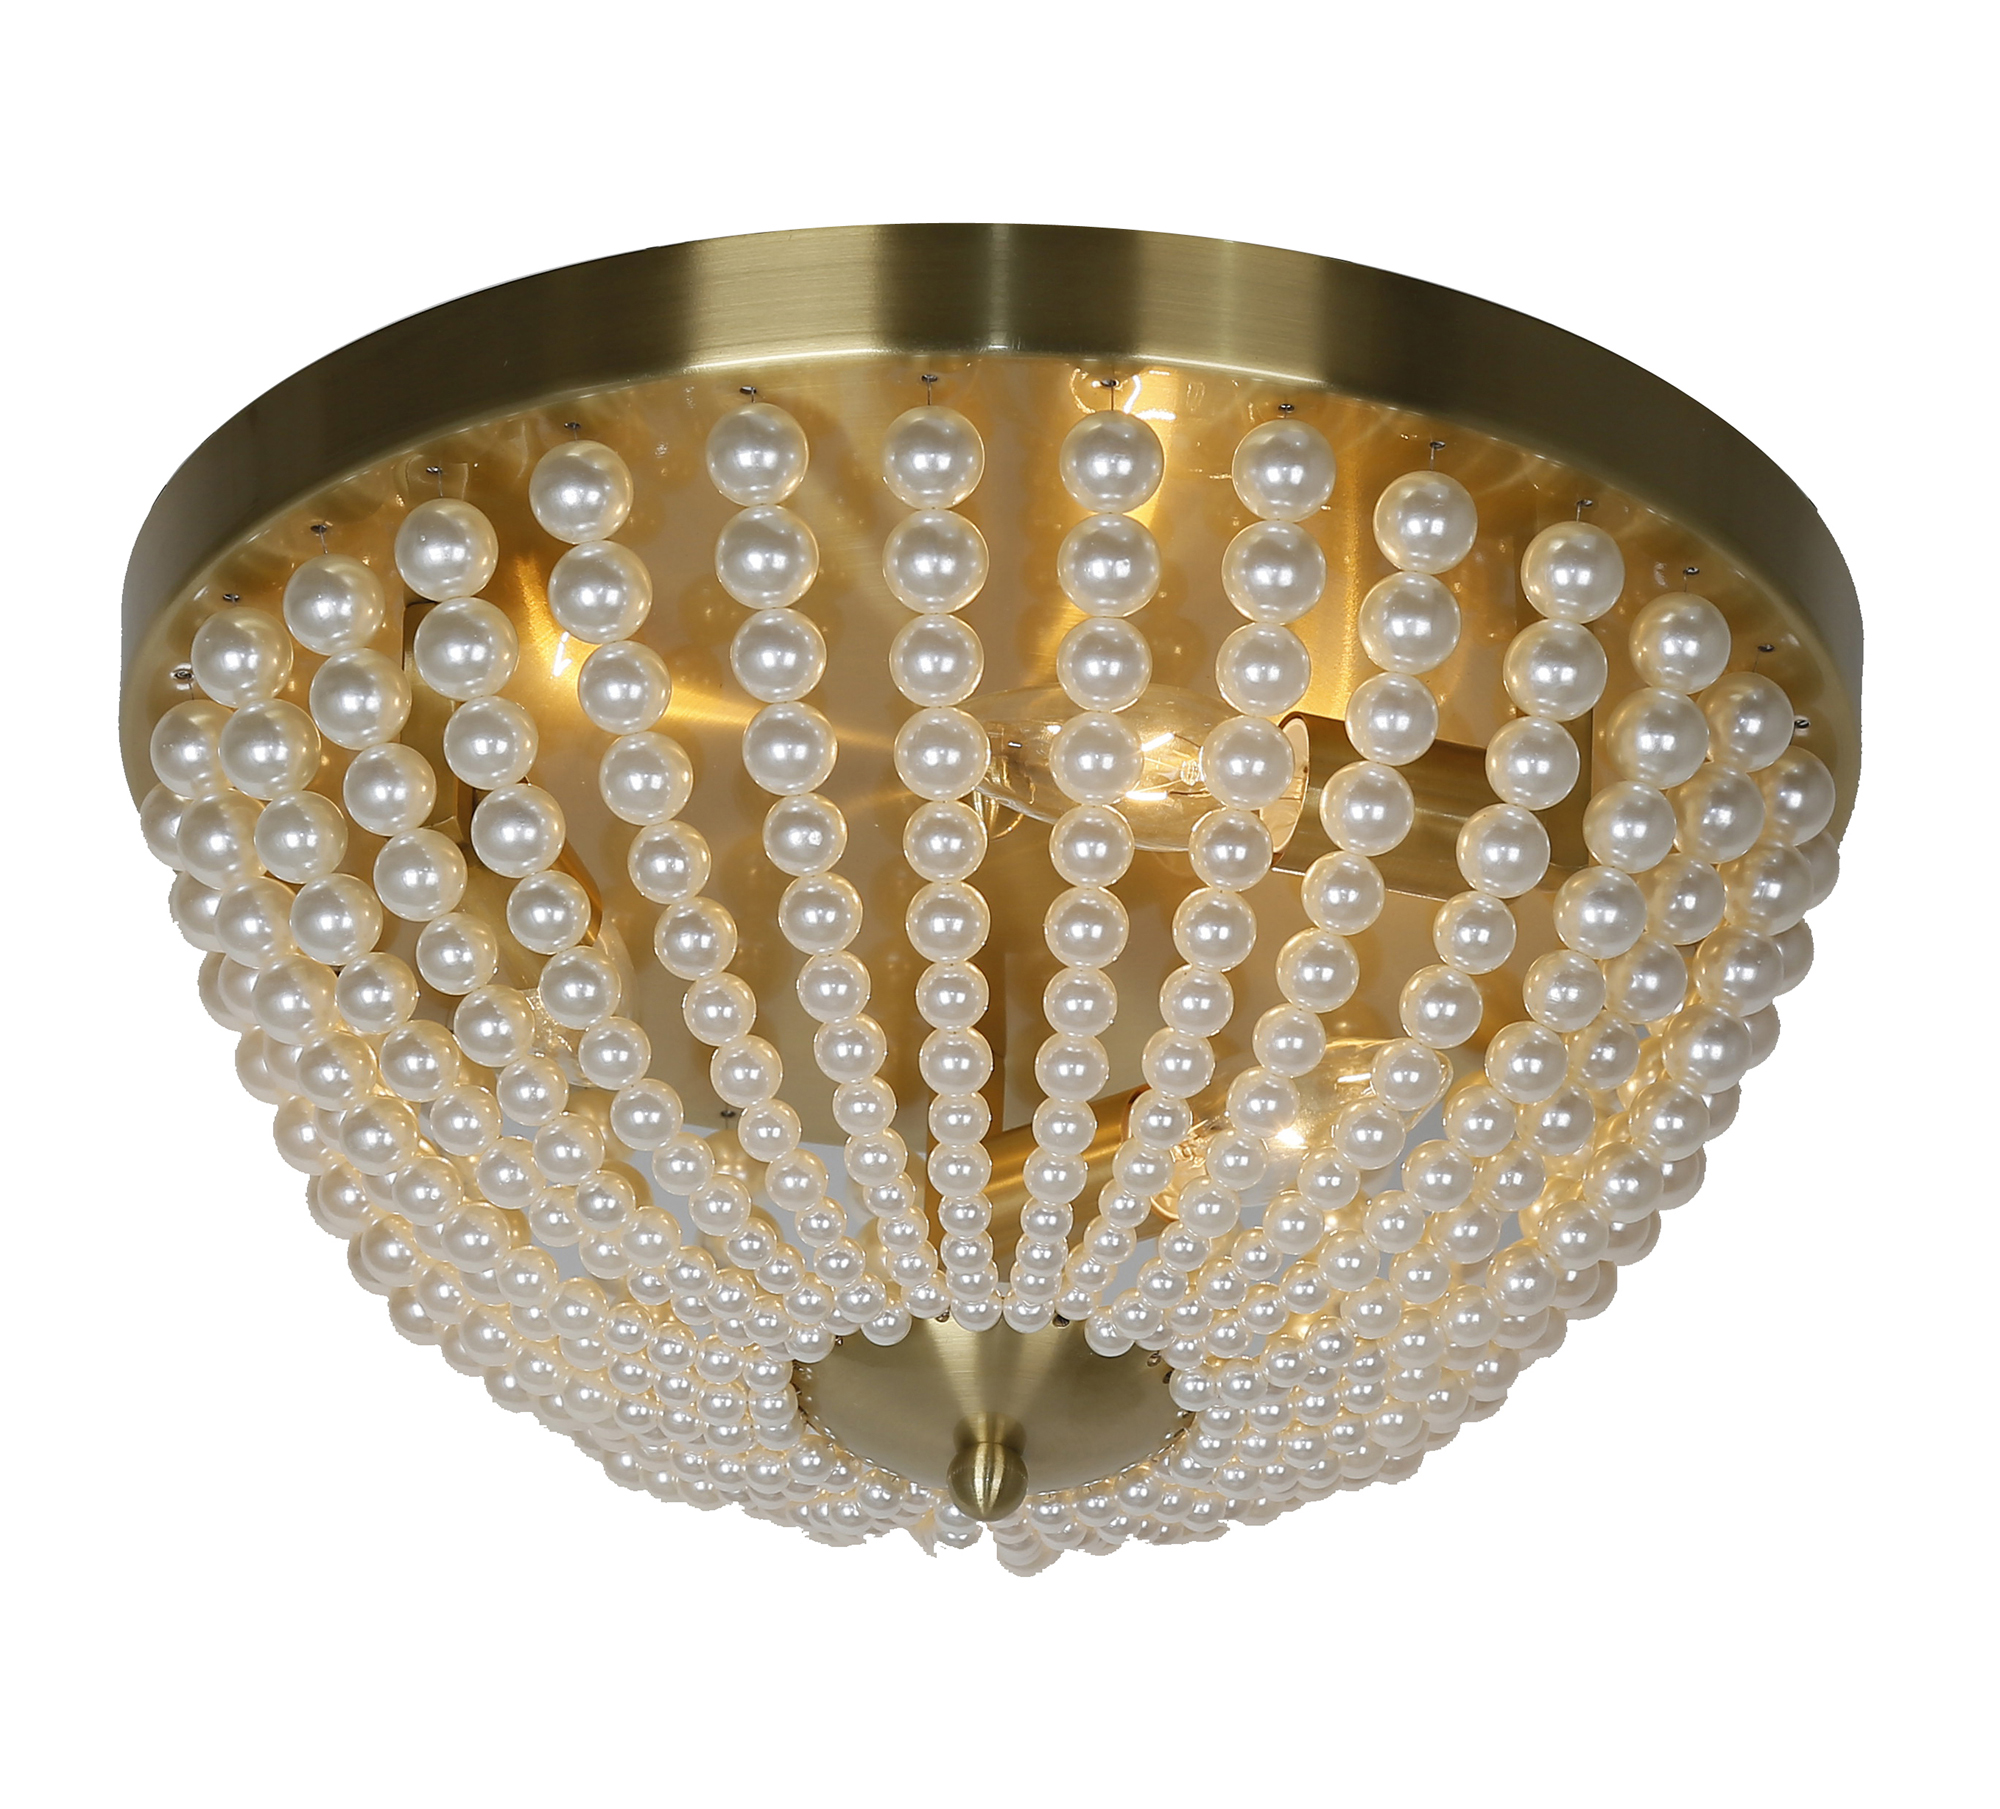 3LT Incandescent Flush-Mount, Aged Brass w/ Pearls